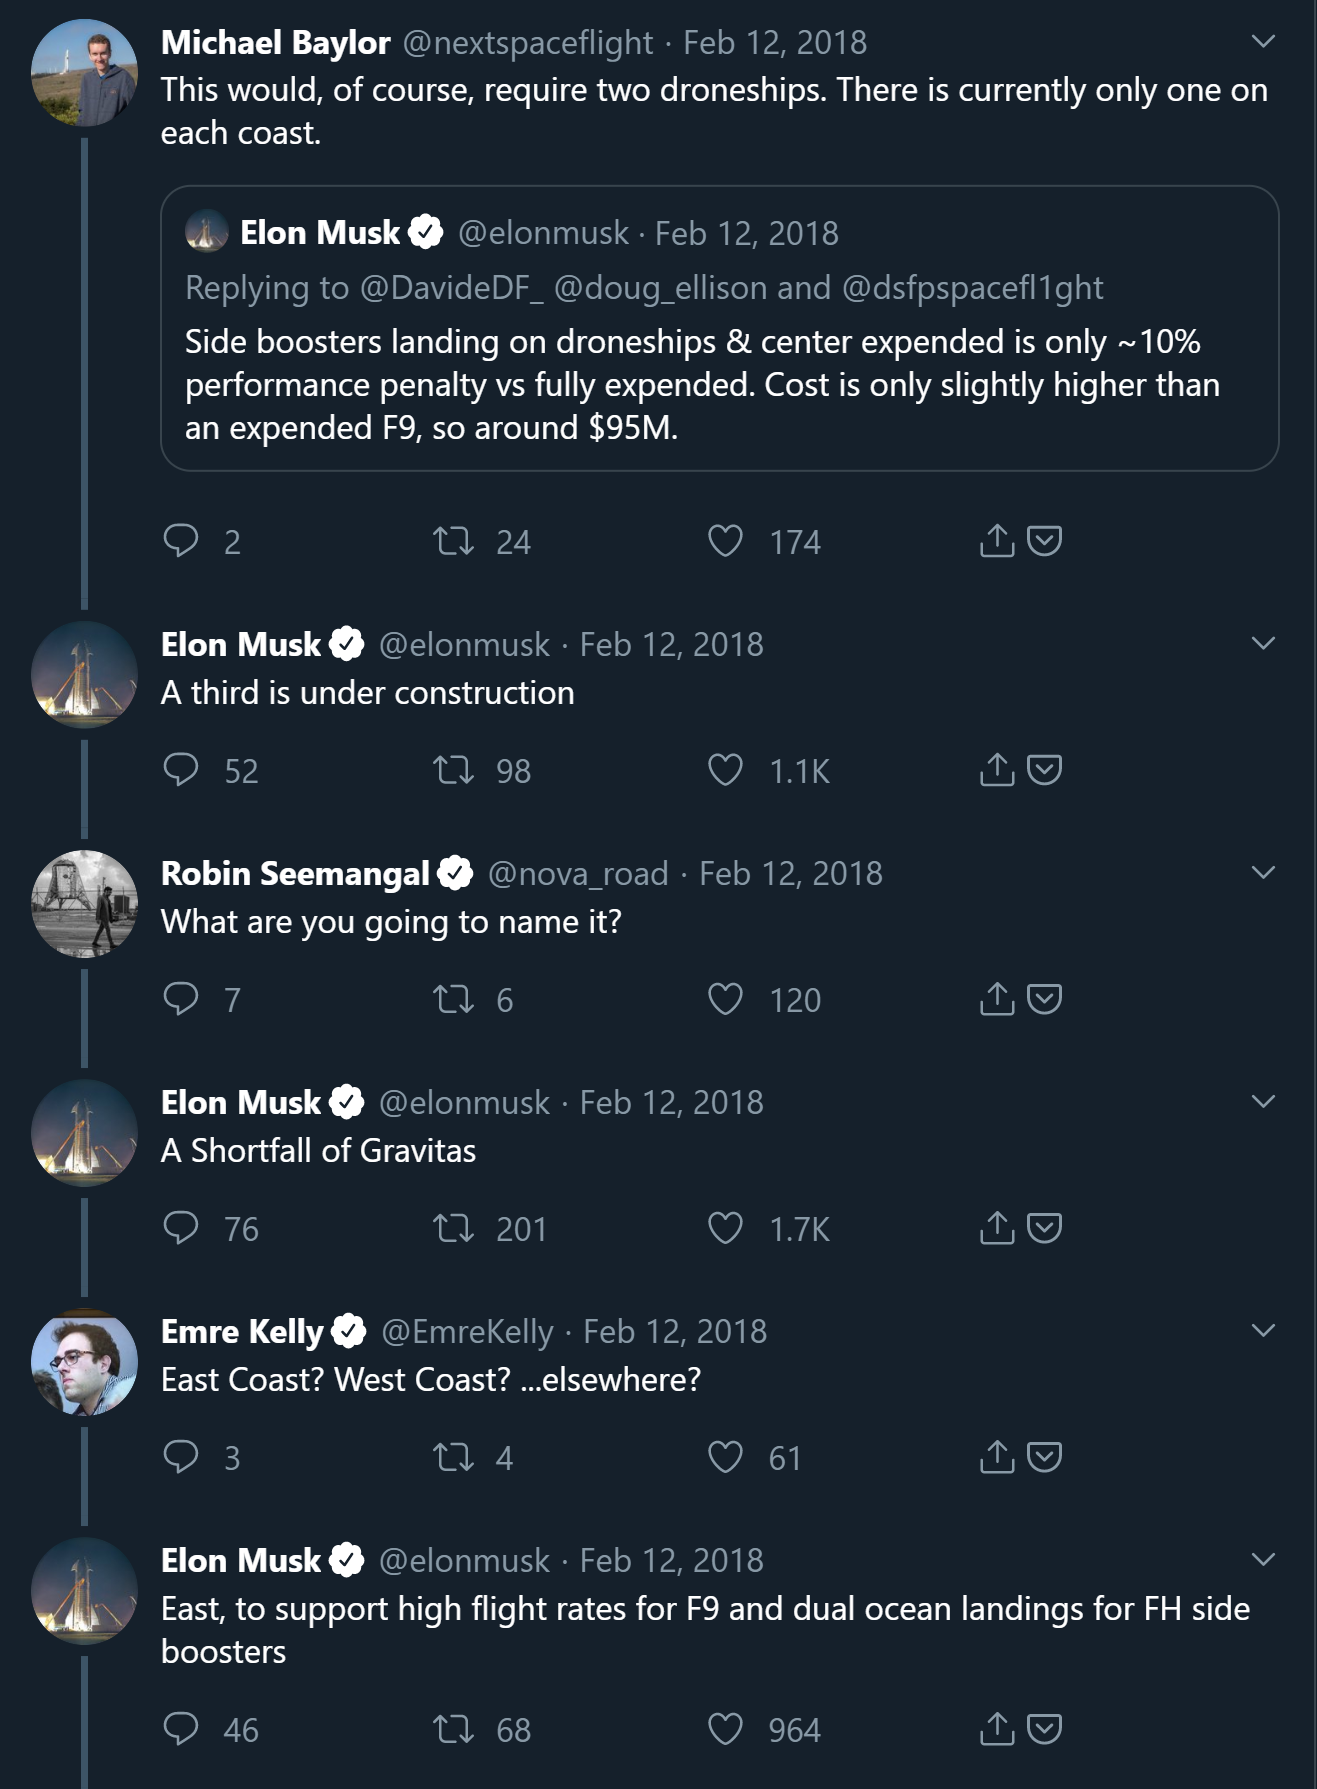 Elon Musk A Shortfall of Gravitas reveal Feb 2018 (Twitter) 1